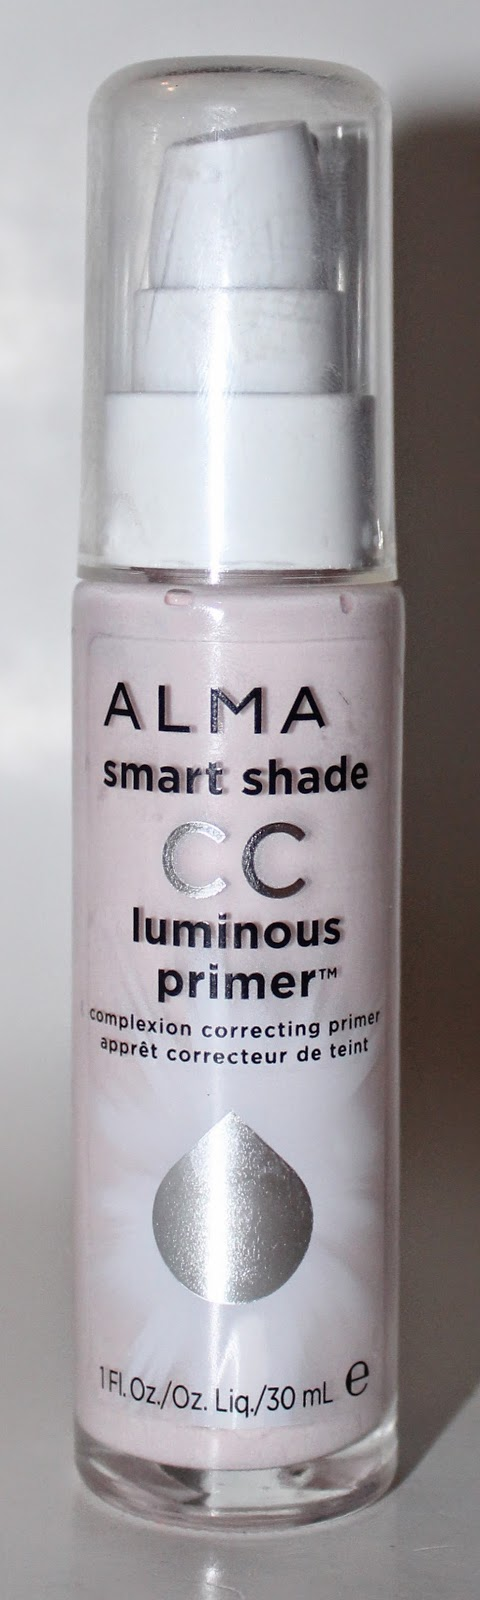 Almay Smart Shade Luminous CC Primer